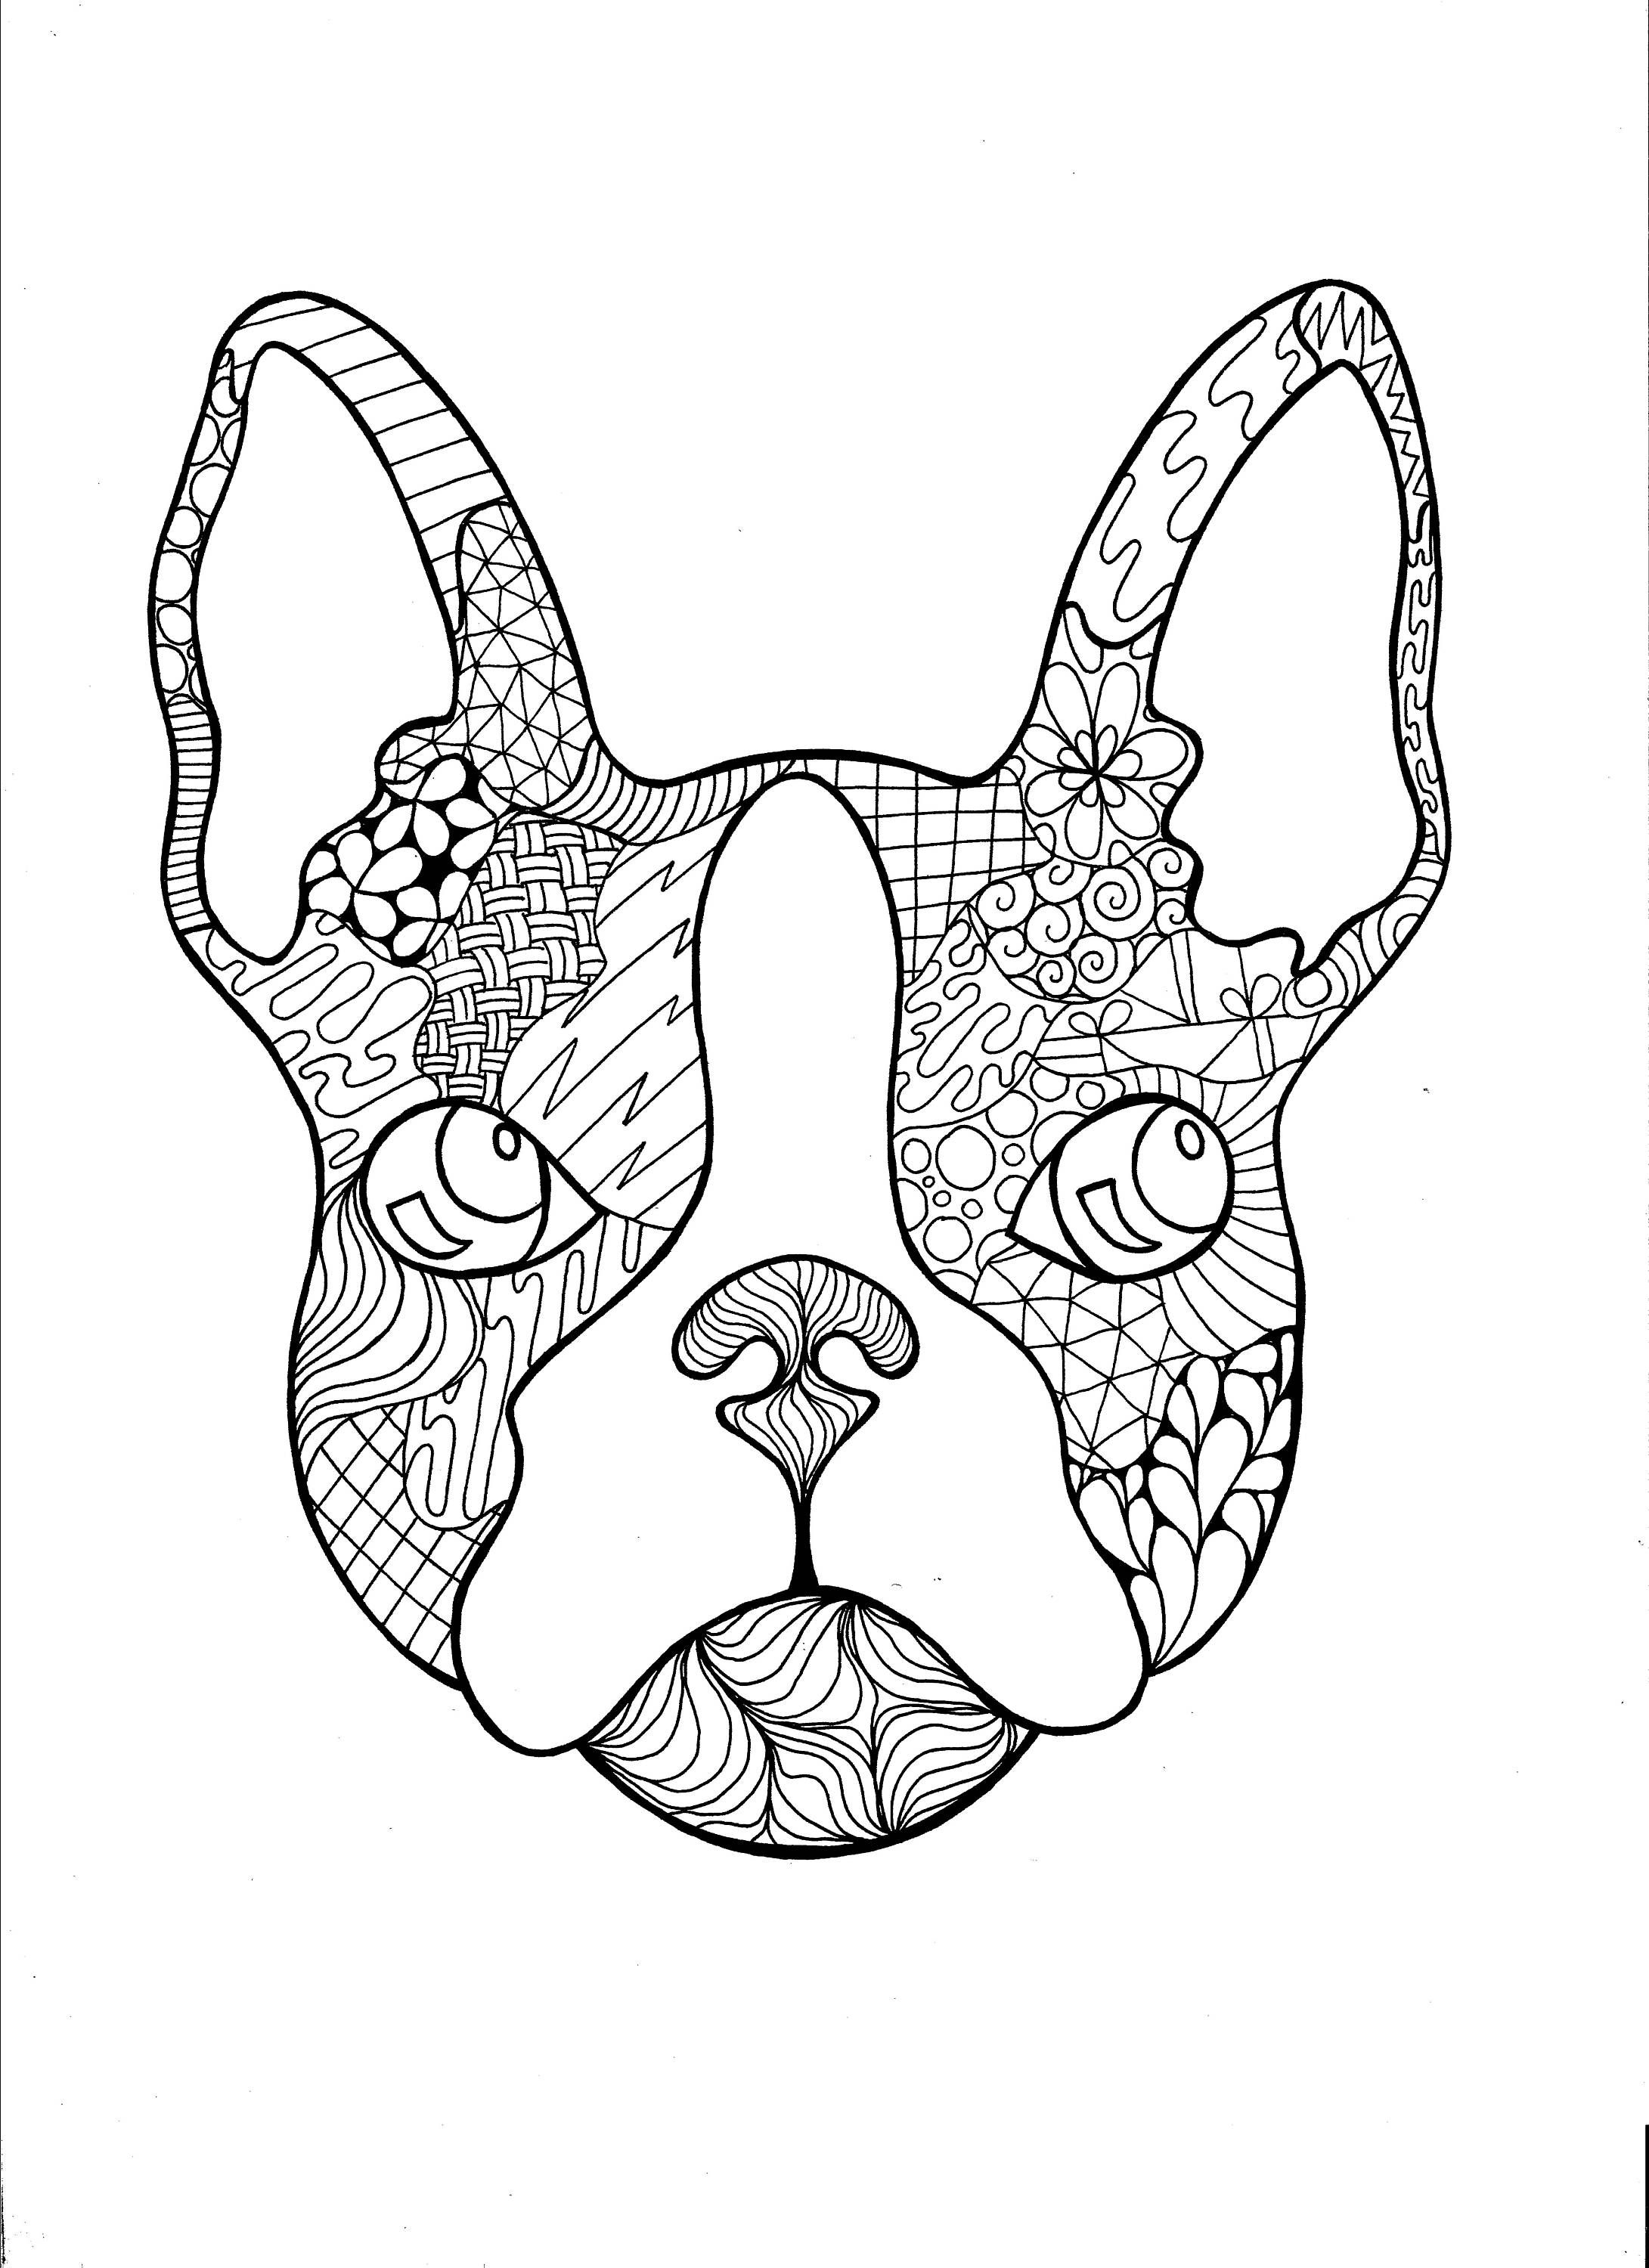 bulldogs coloring pages bulldog coloring pages getcoloringpagescom pages bulldogs coloring